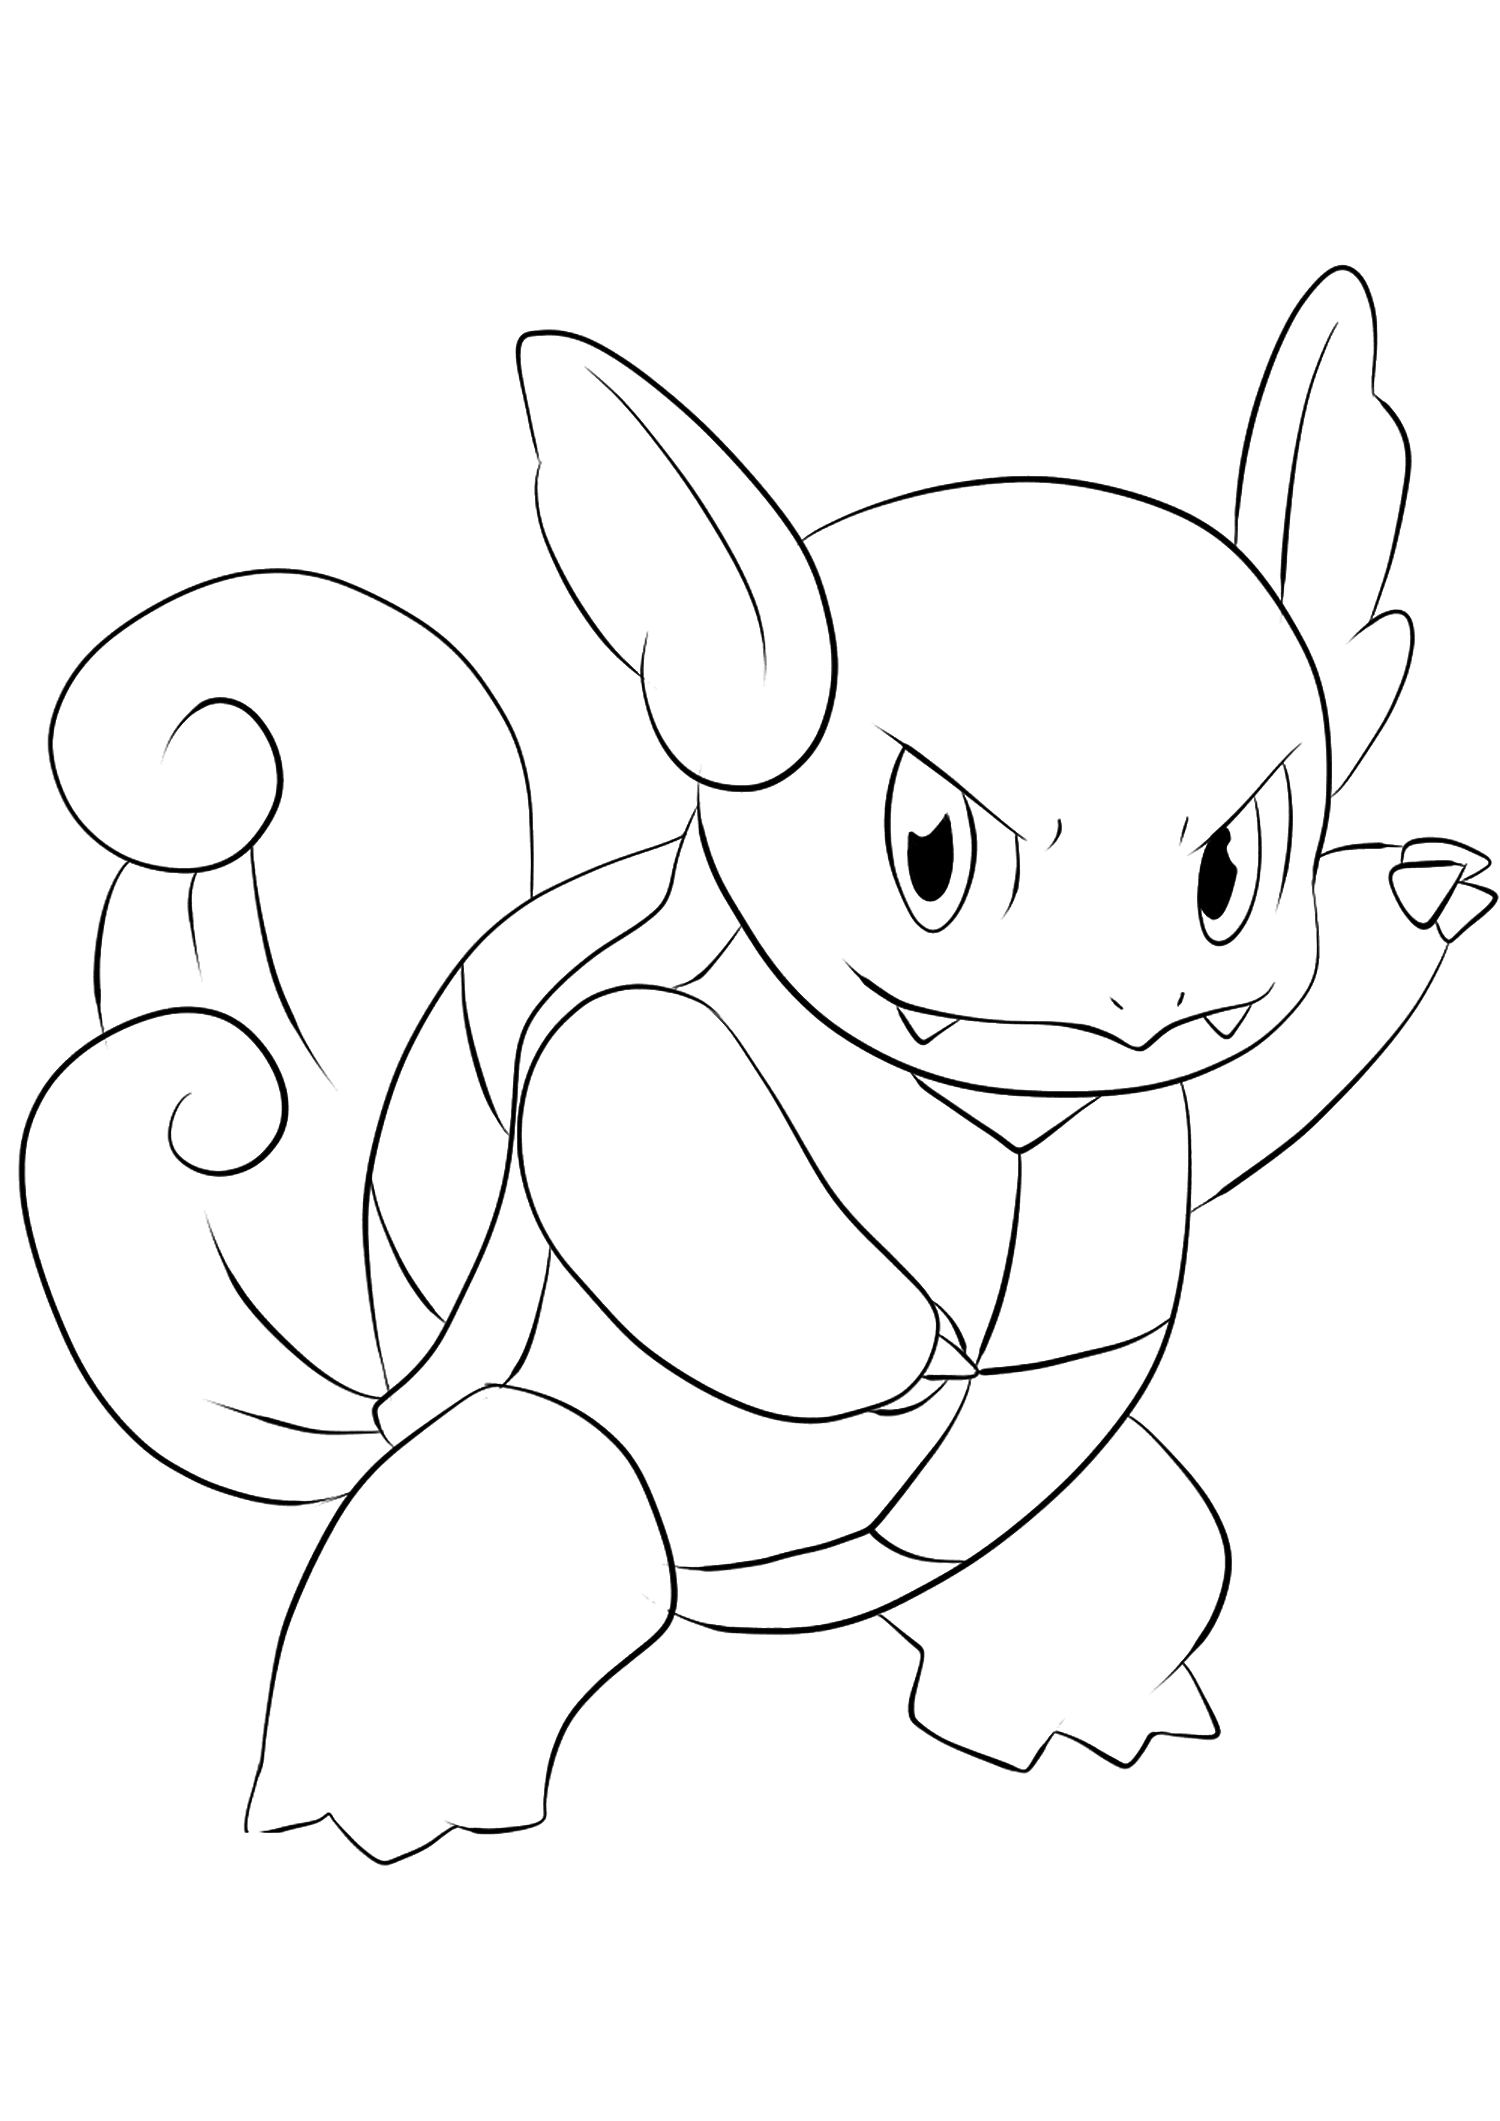 Wartortle (No.08)Wartortle Coloring page, Generation I Pokemon of type WaterOriginal image credit: Pokemon linearts by Lilly Gerbil'font-size:smaller;color:gray'>Permission: All rights reserved © Pokemon company and Ken Sugimori.